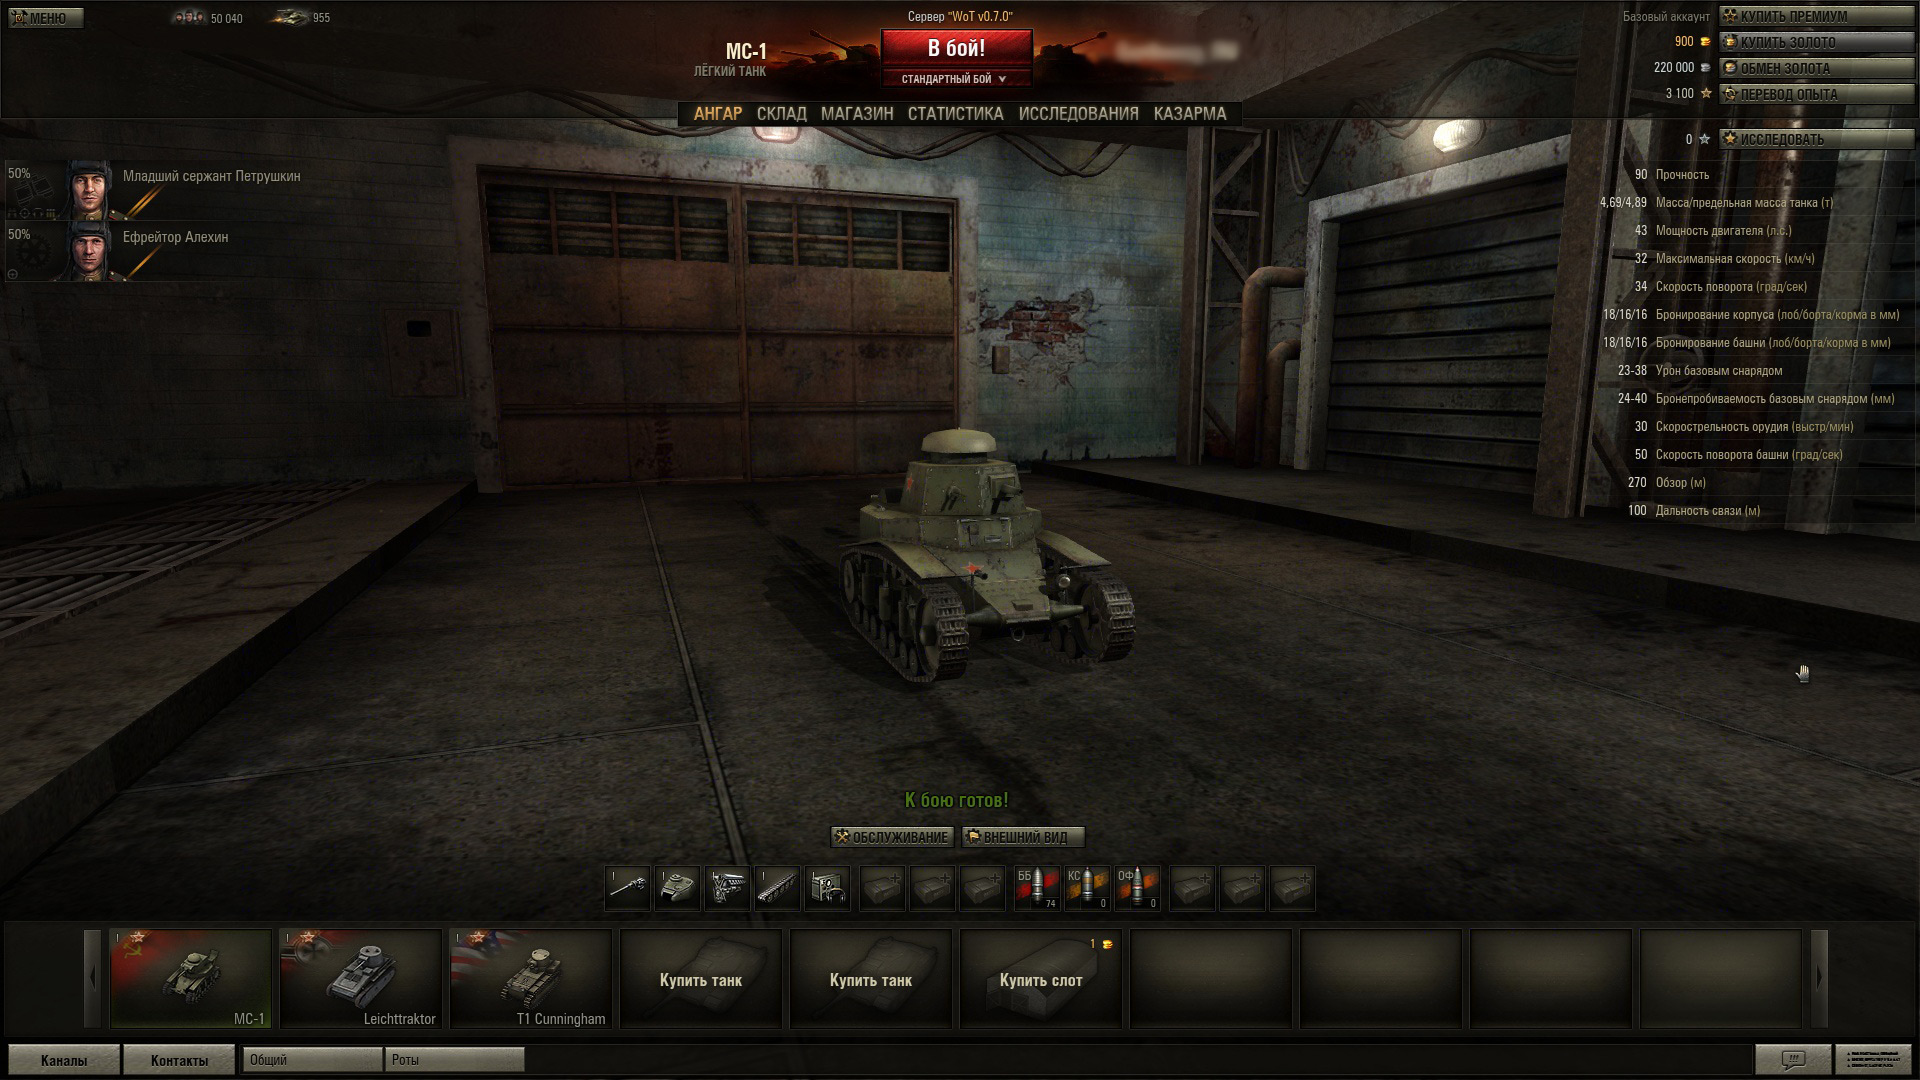 world of tanks 0.7.0